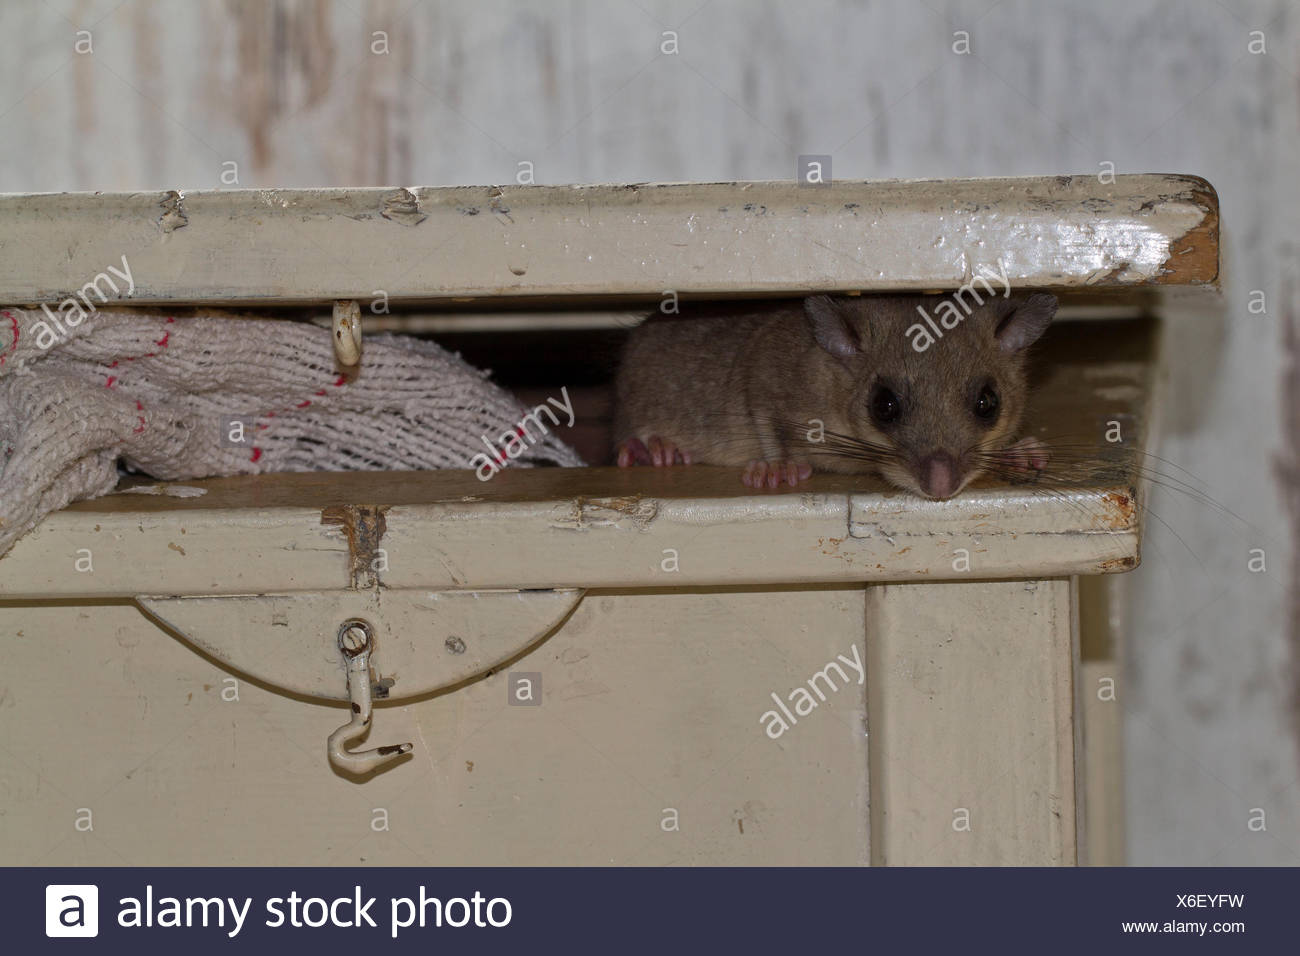 fat dormouse, edible dormouse (Glis glis) looking out of box table, Europe - Stock Image